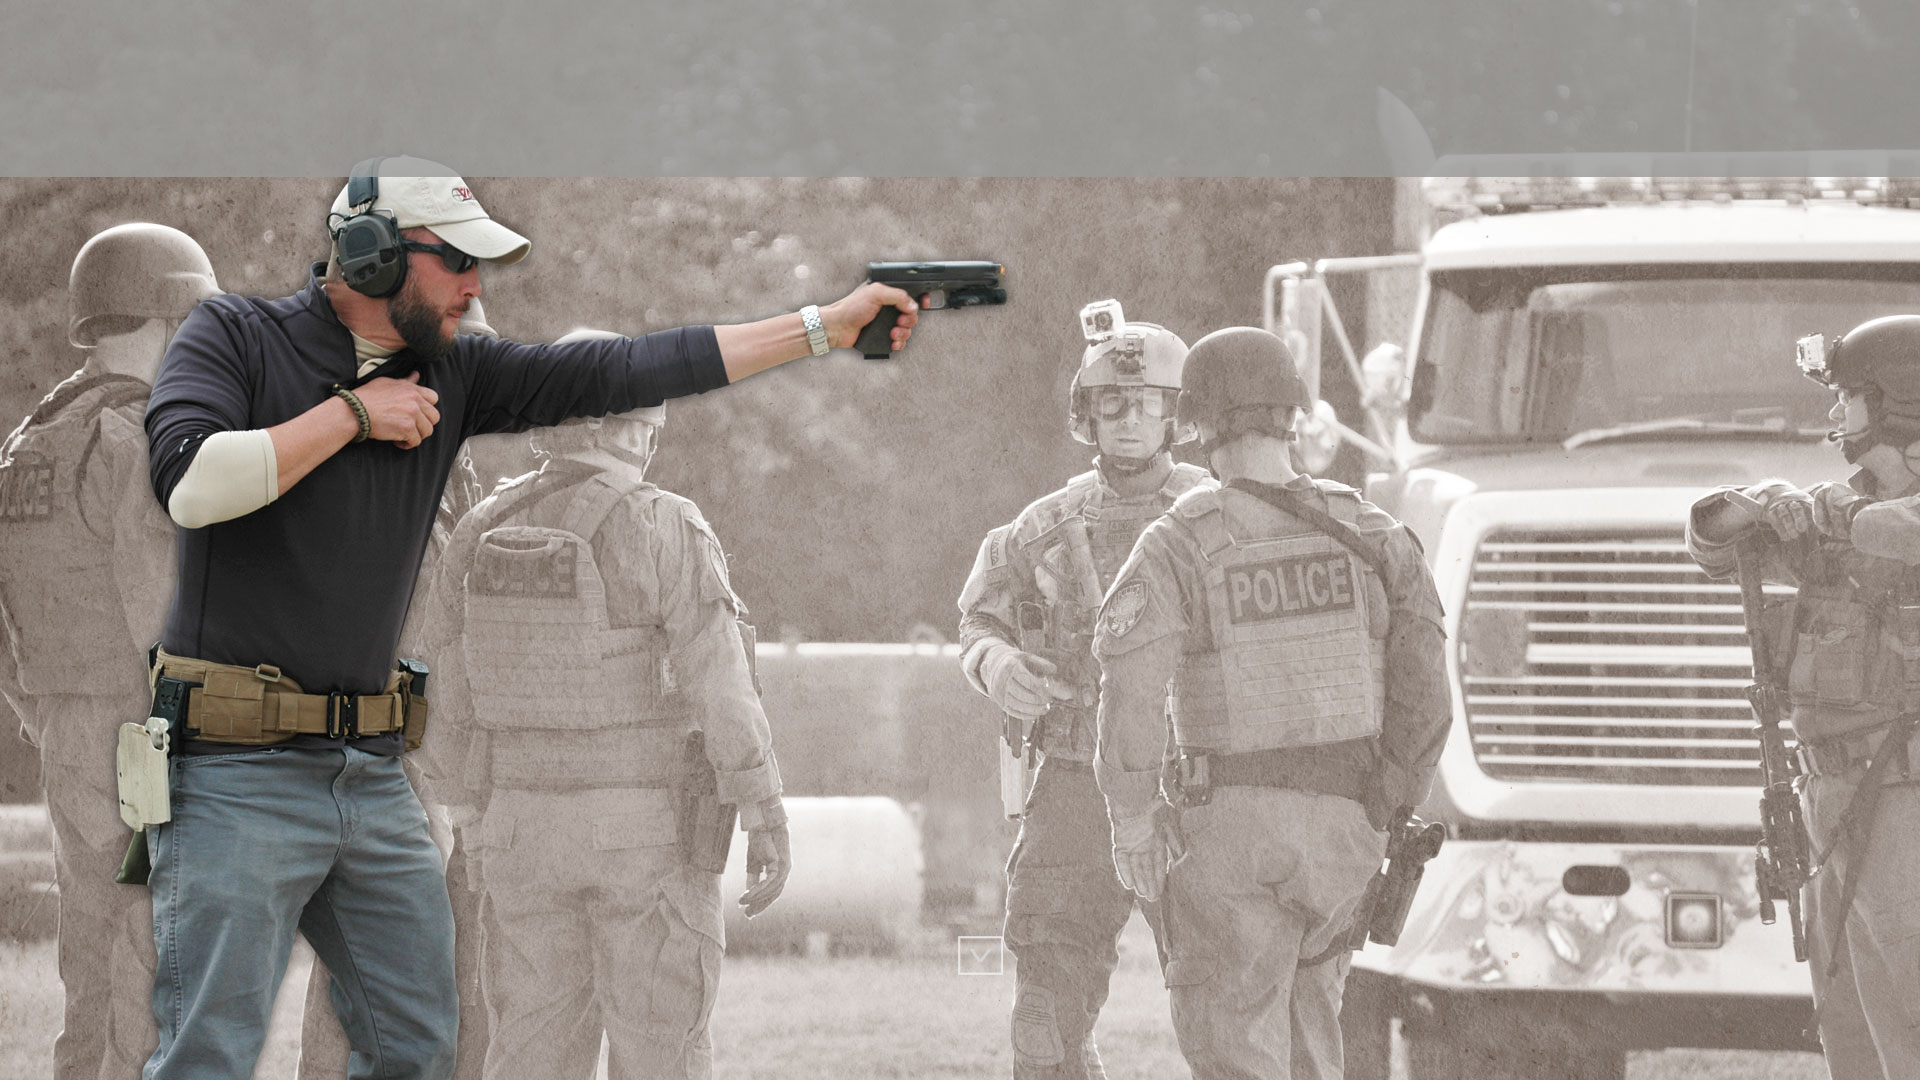 Force on Force Firearms Training